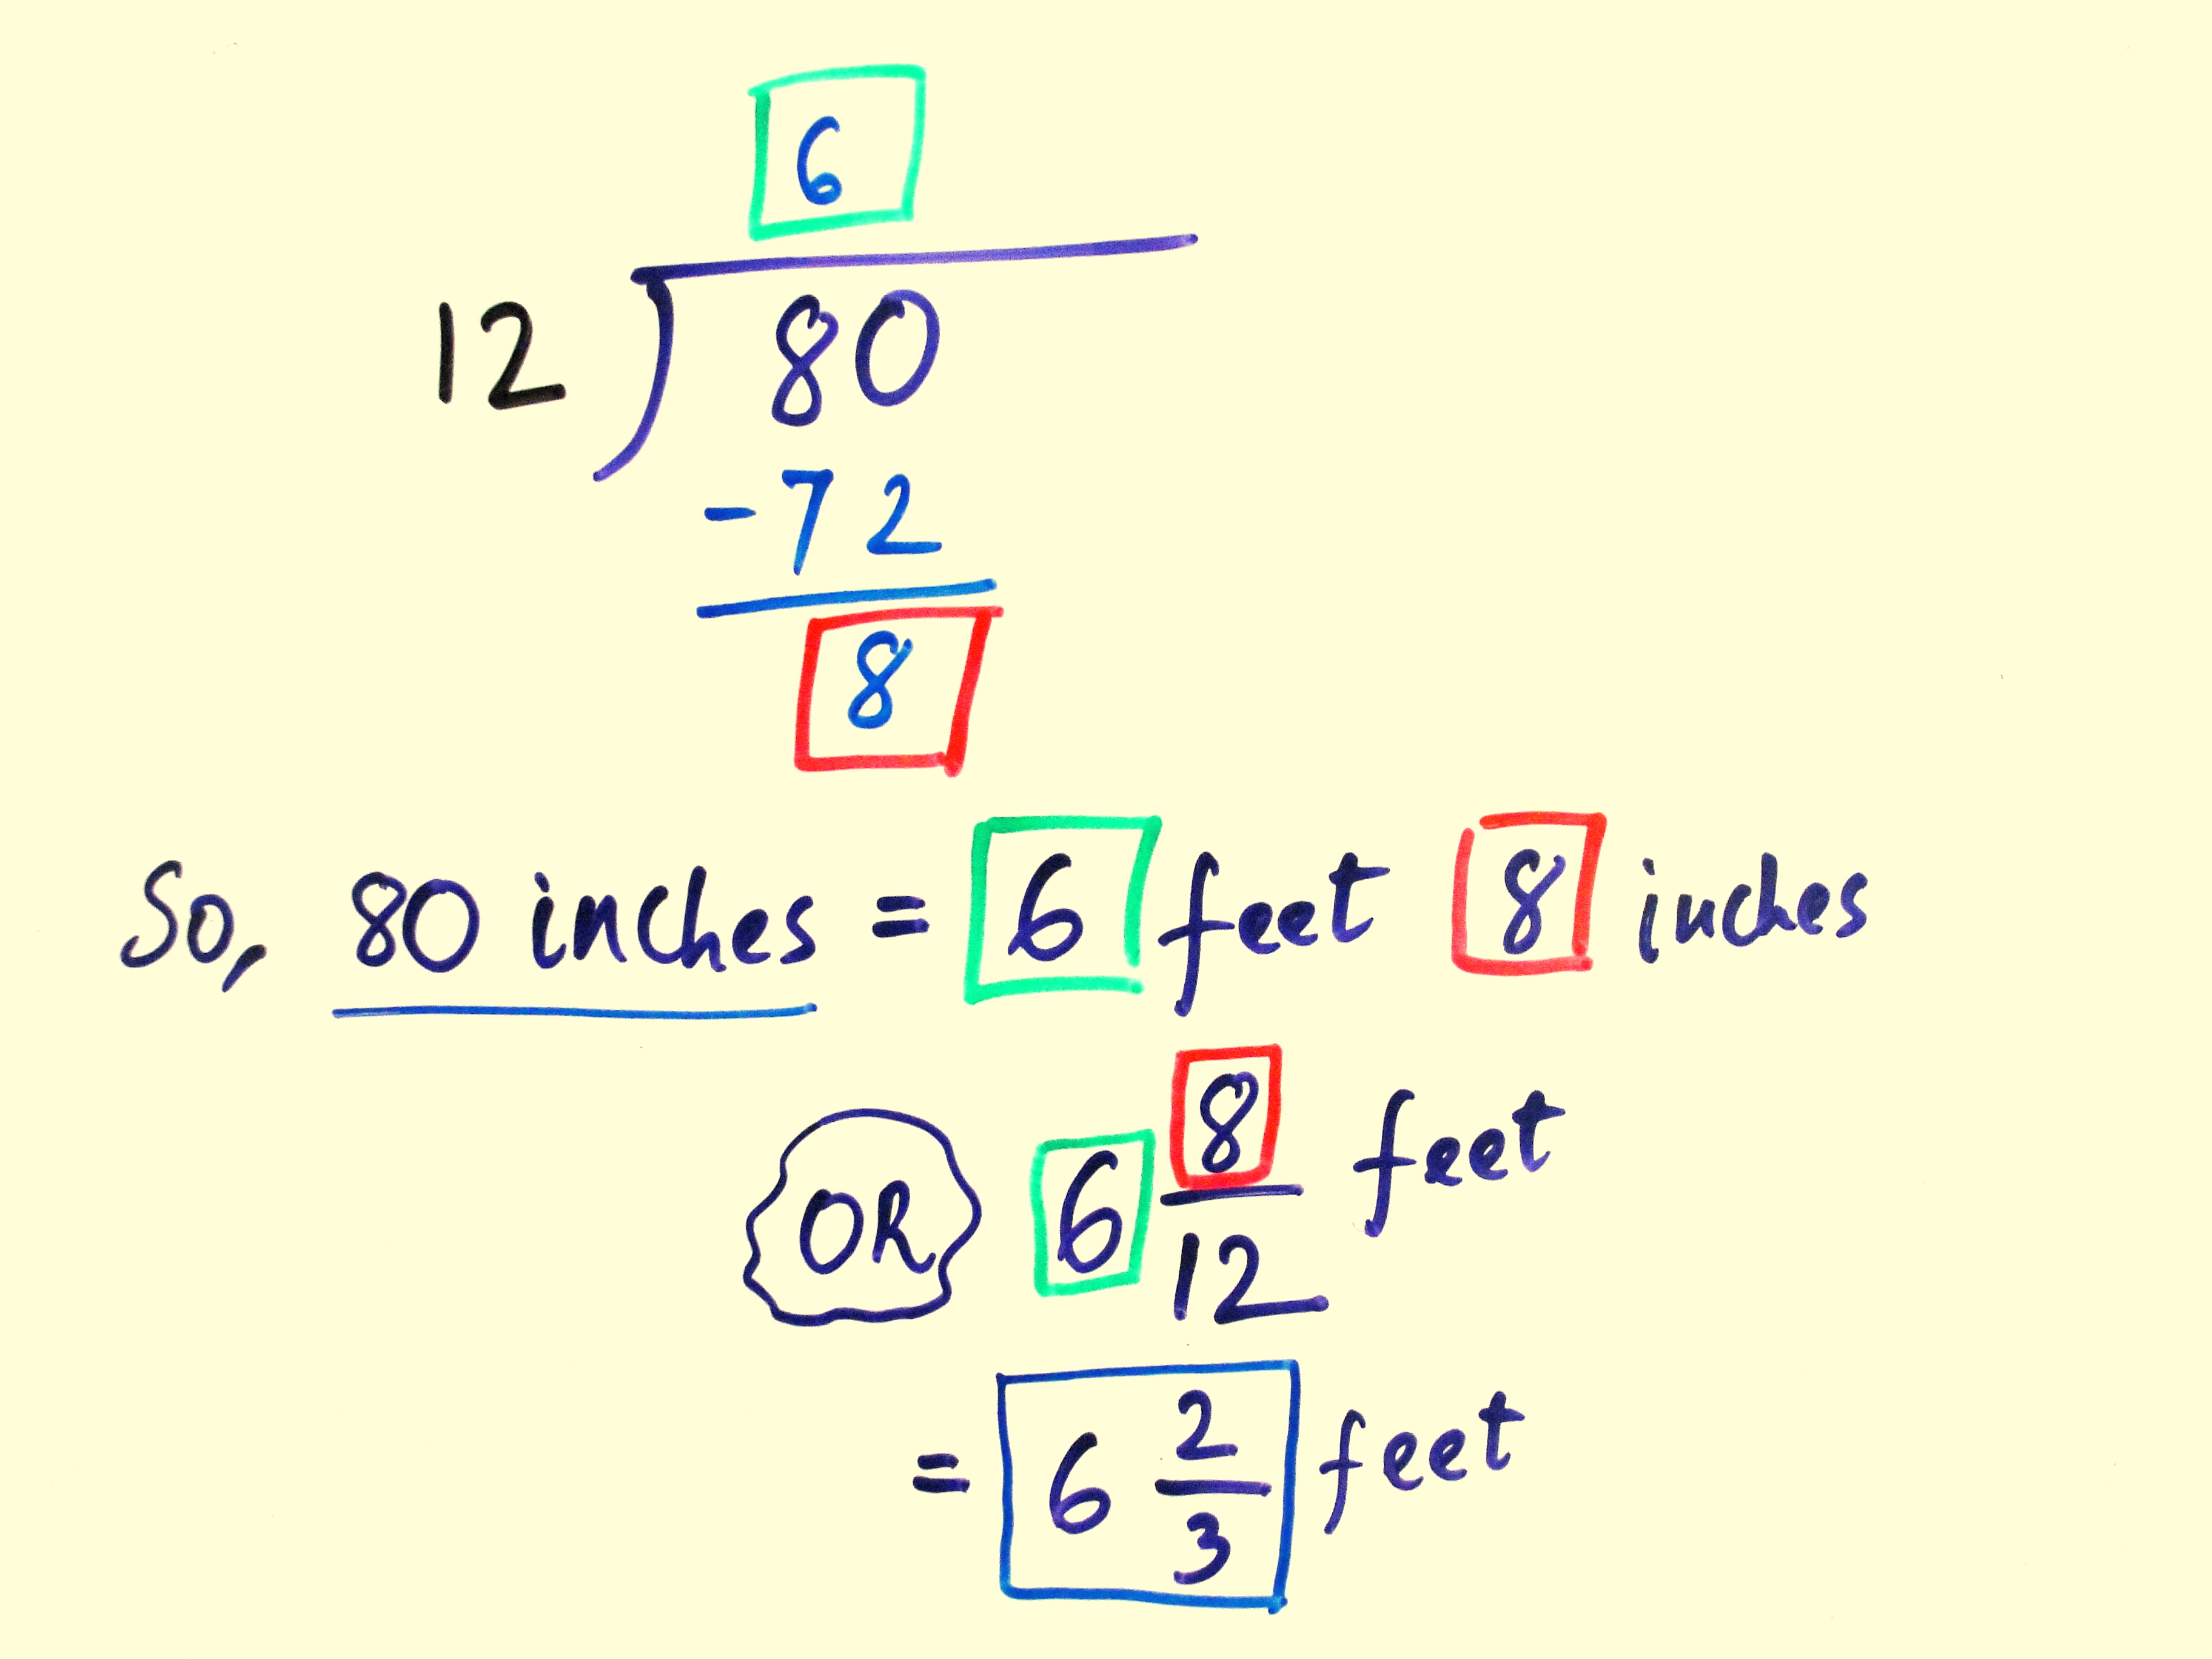 How To Convert Inches To Feet With Unit Converter